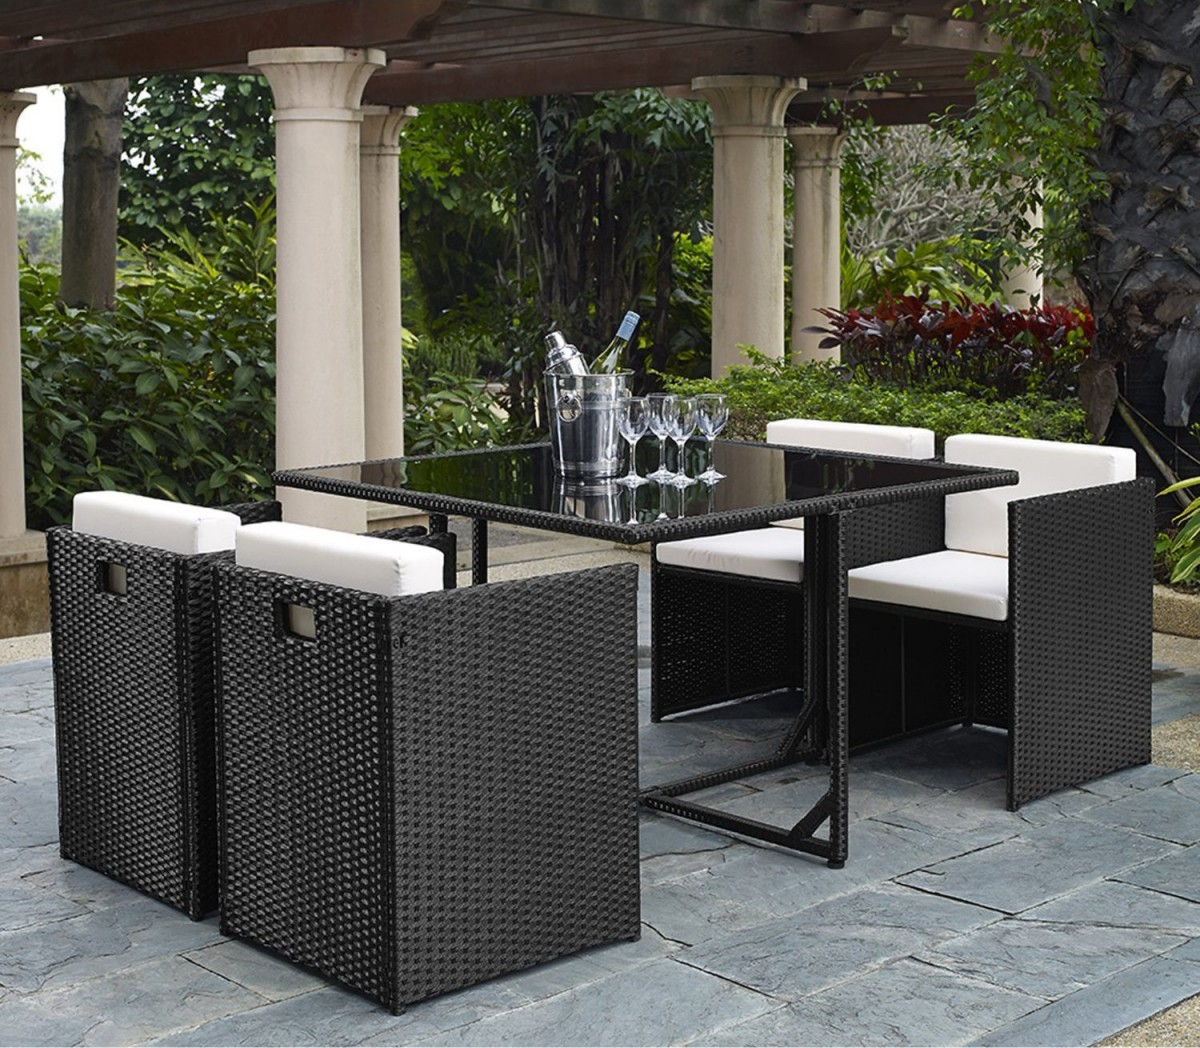 Garden Furniture Chairs 5 piece rattan cube garden furniture set w/ stowaway chairs